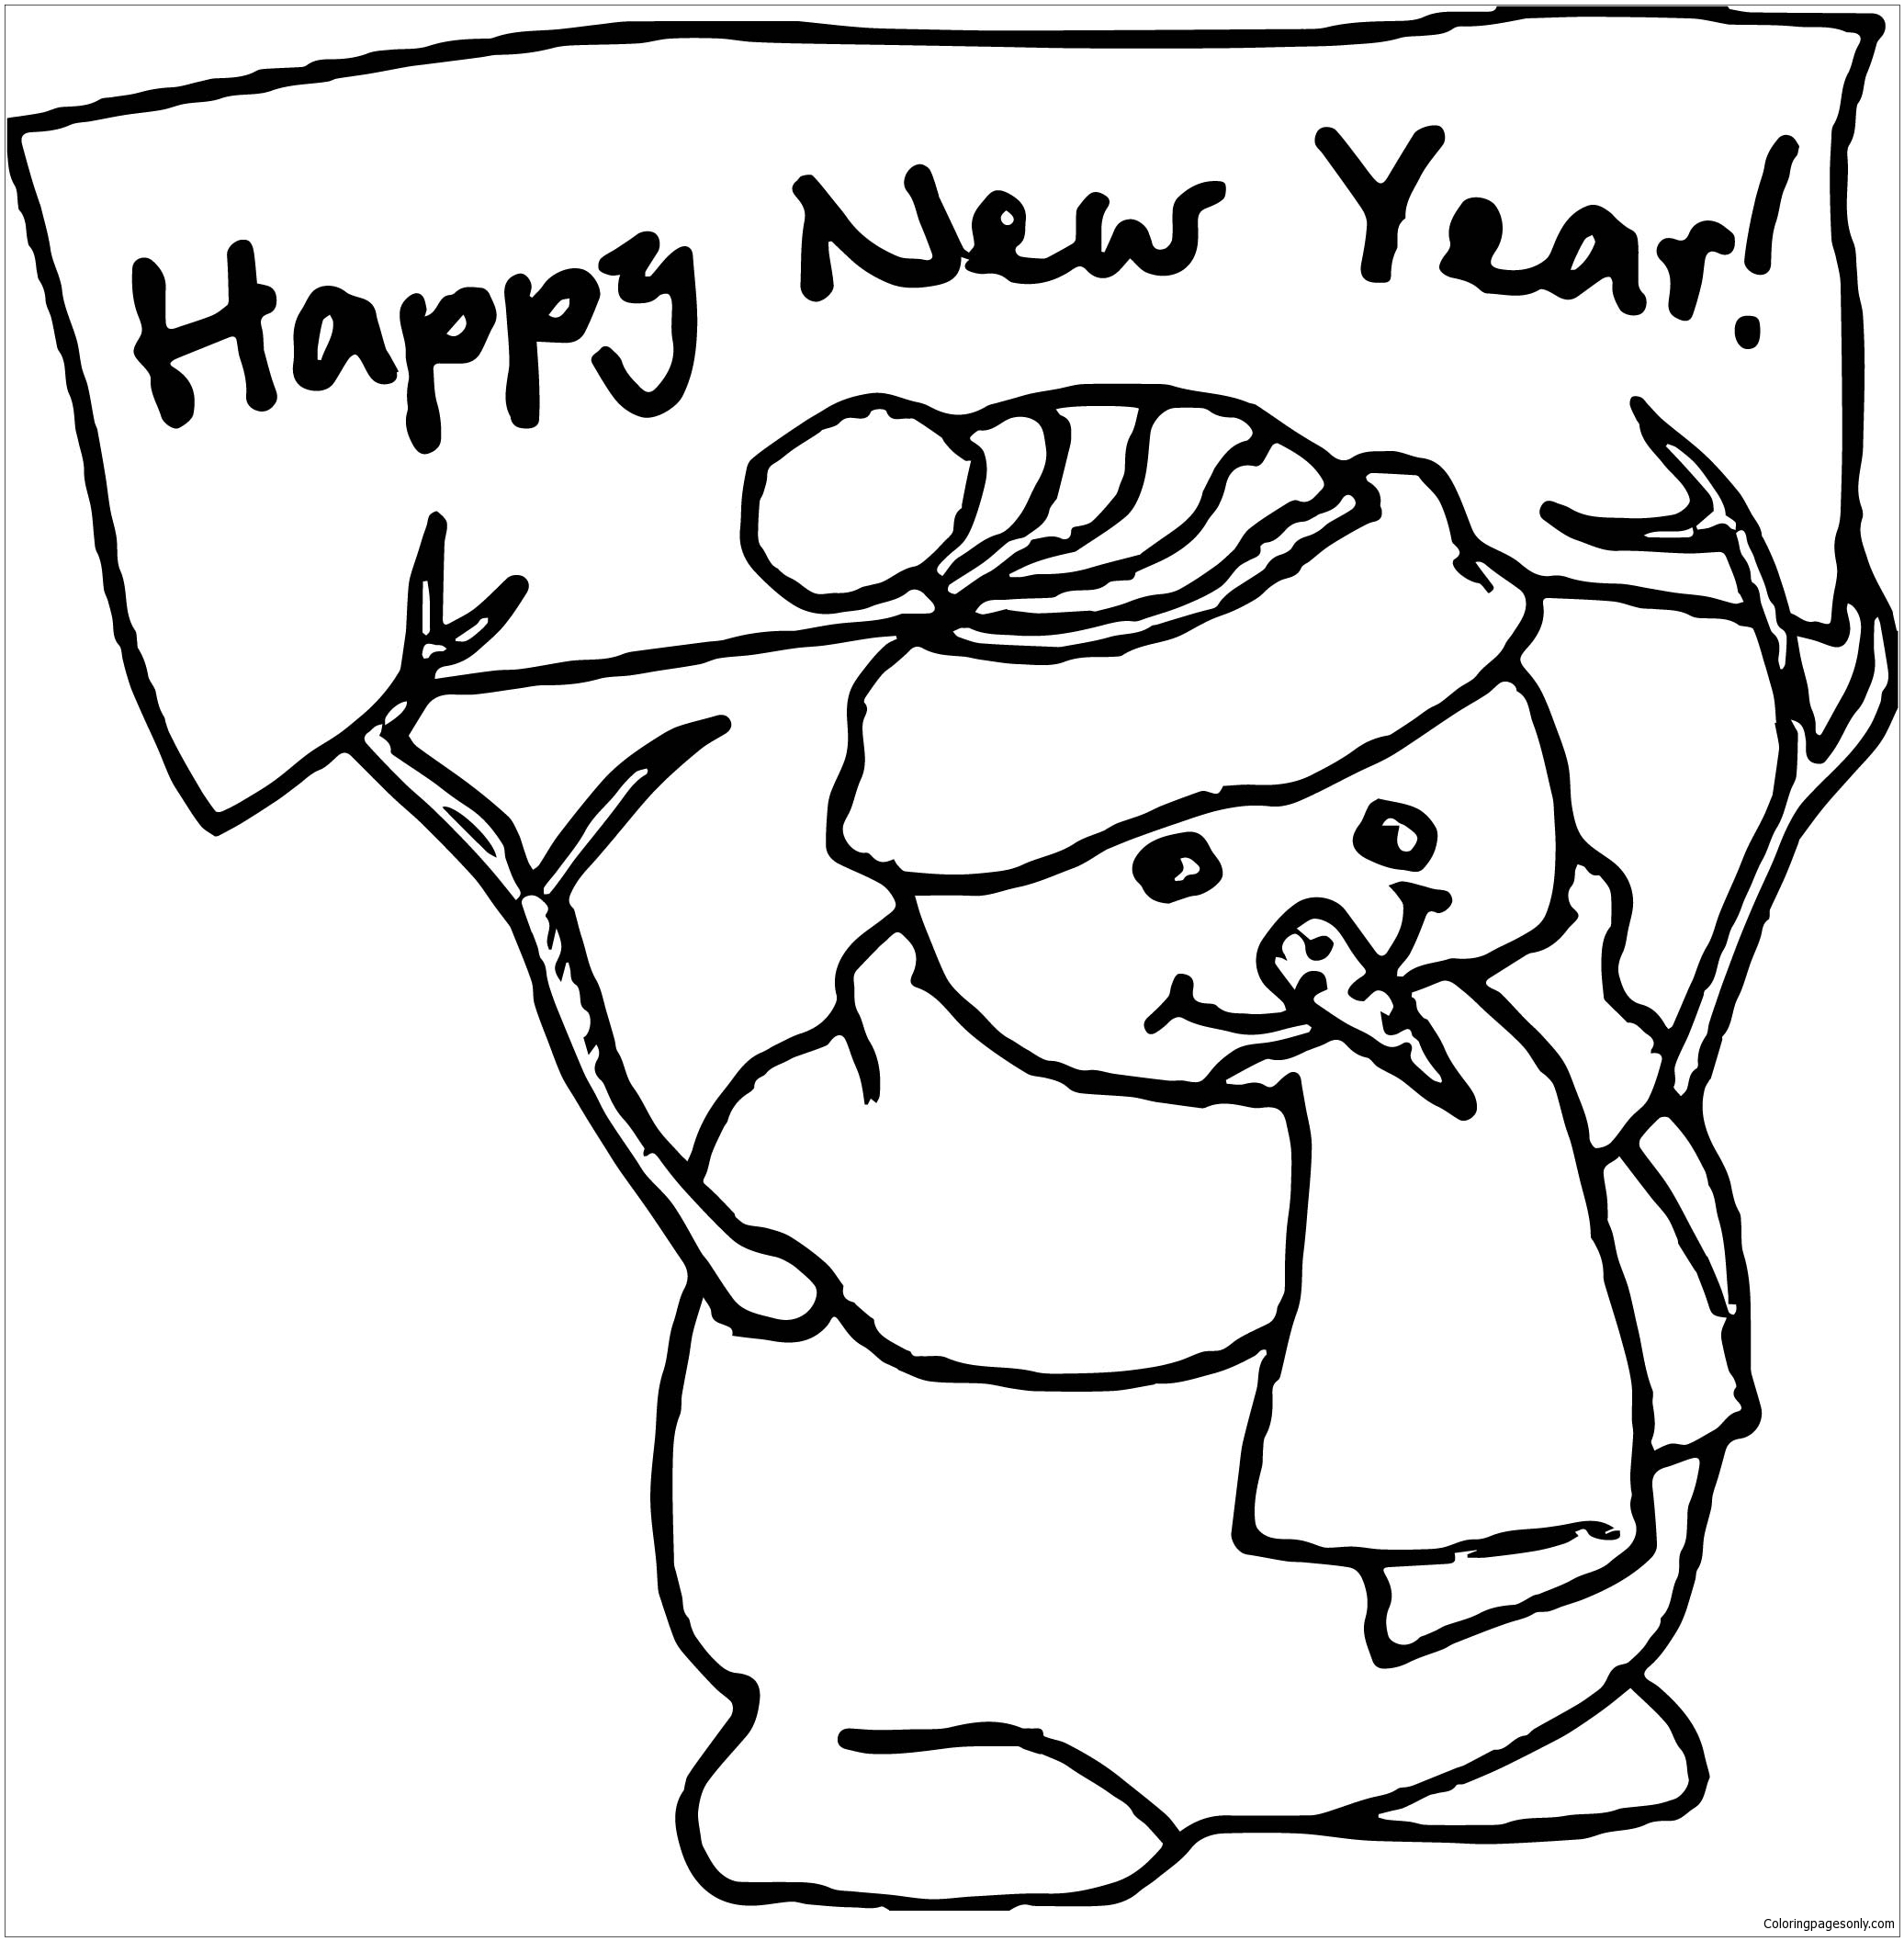 Happy New Year Snowman Coloring Page